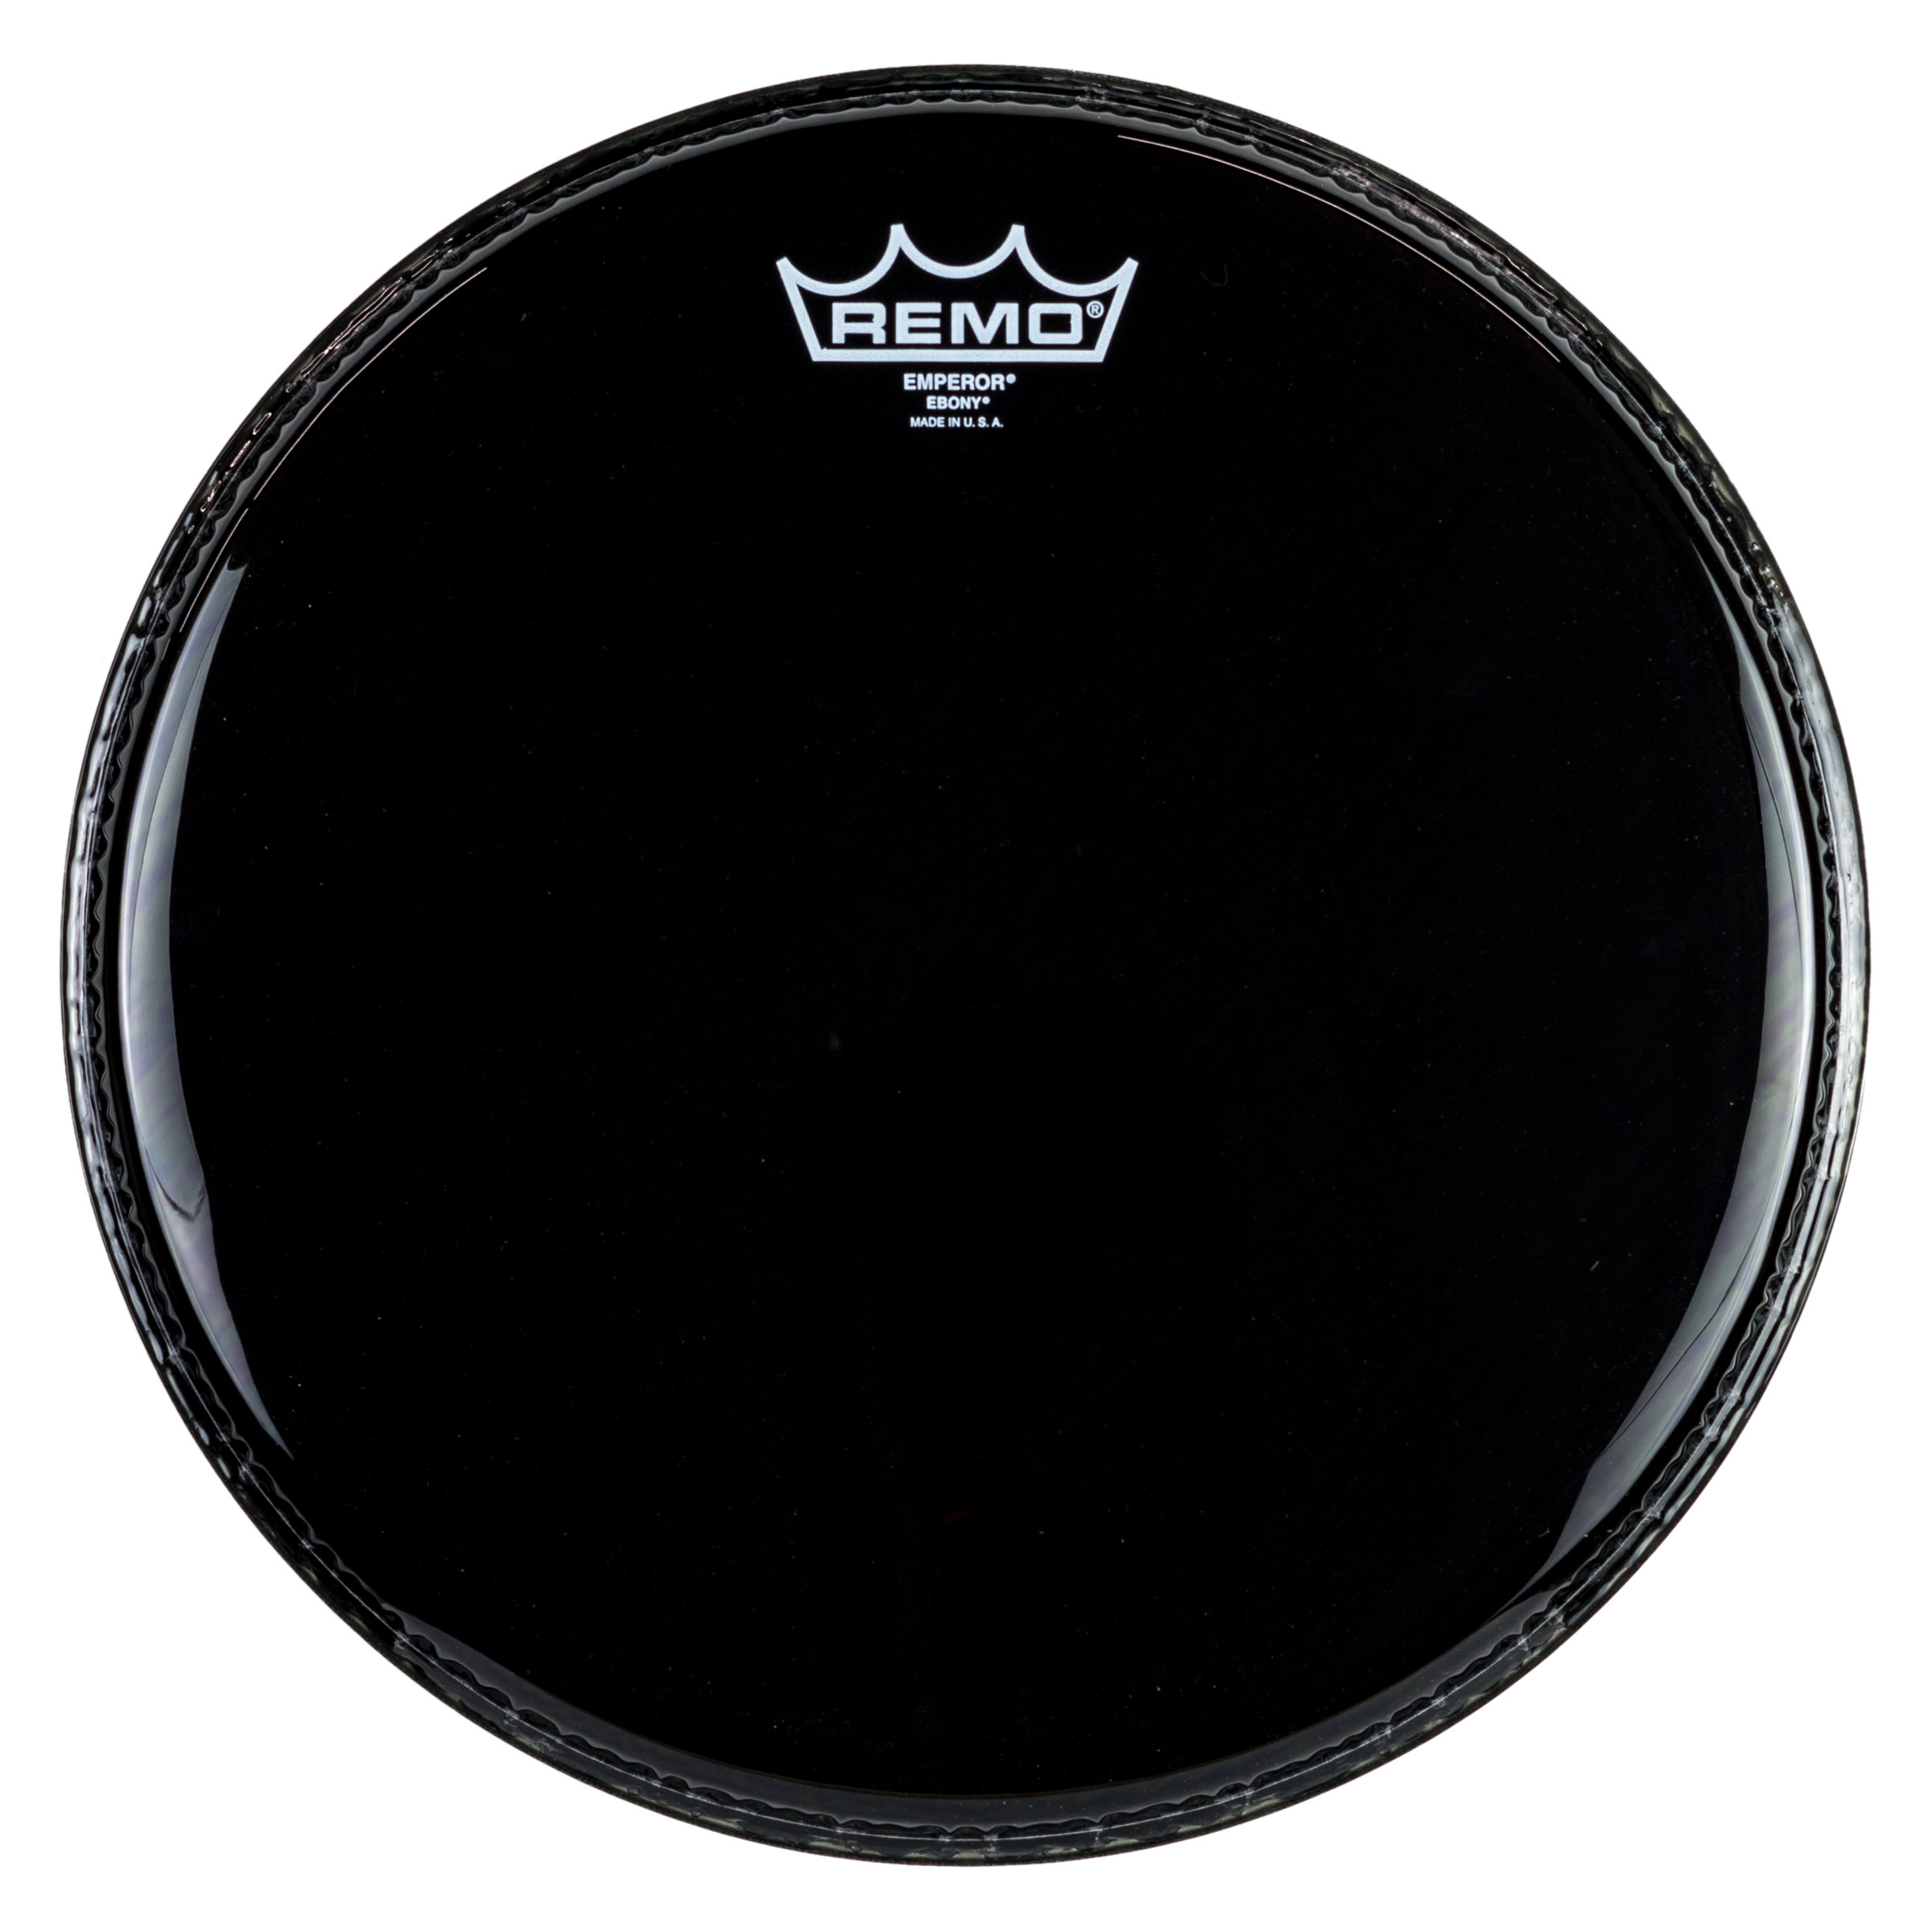 "Remo 12"" Emperor Ebony Drum Head"